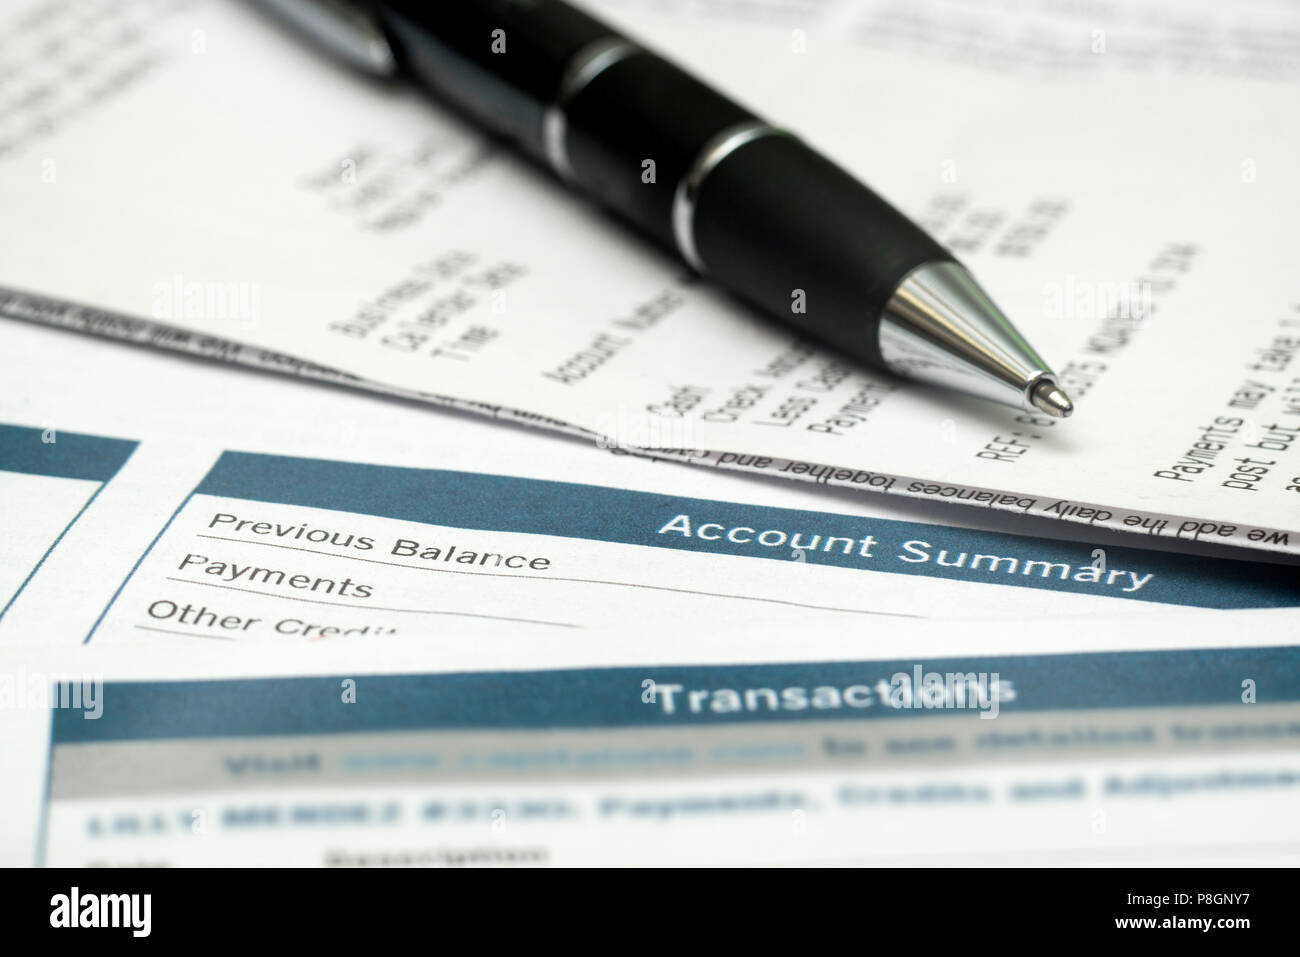 Pen On Top Of Receipts And Bank Statements - Stock Image